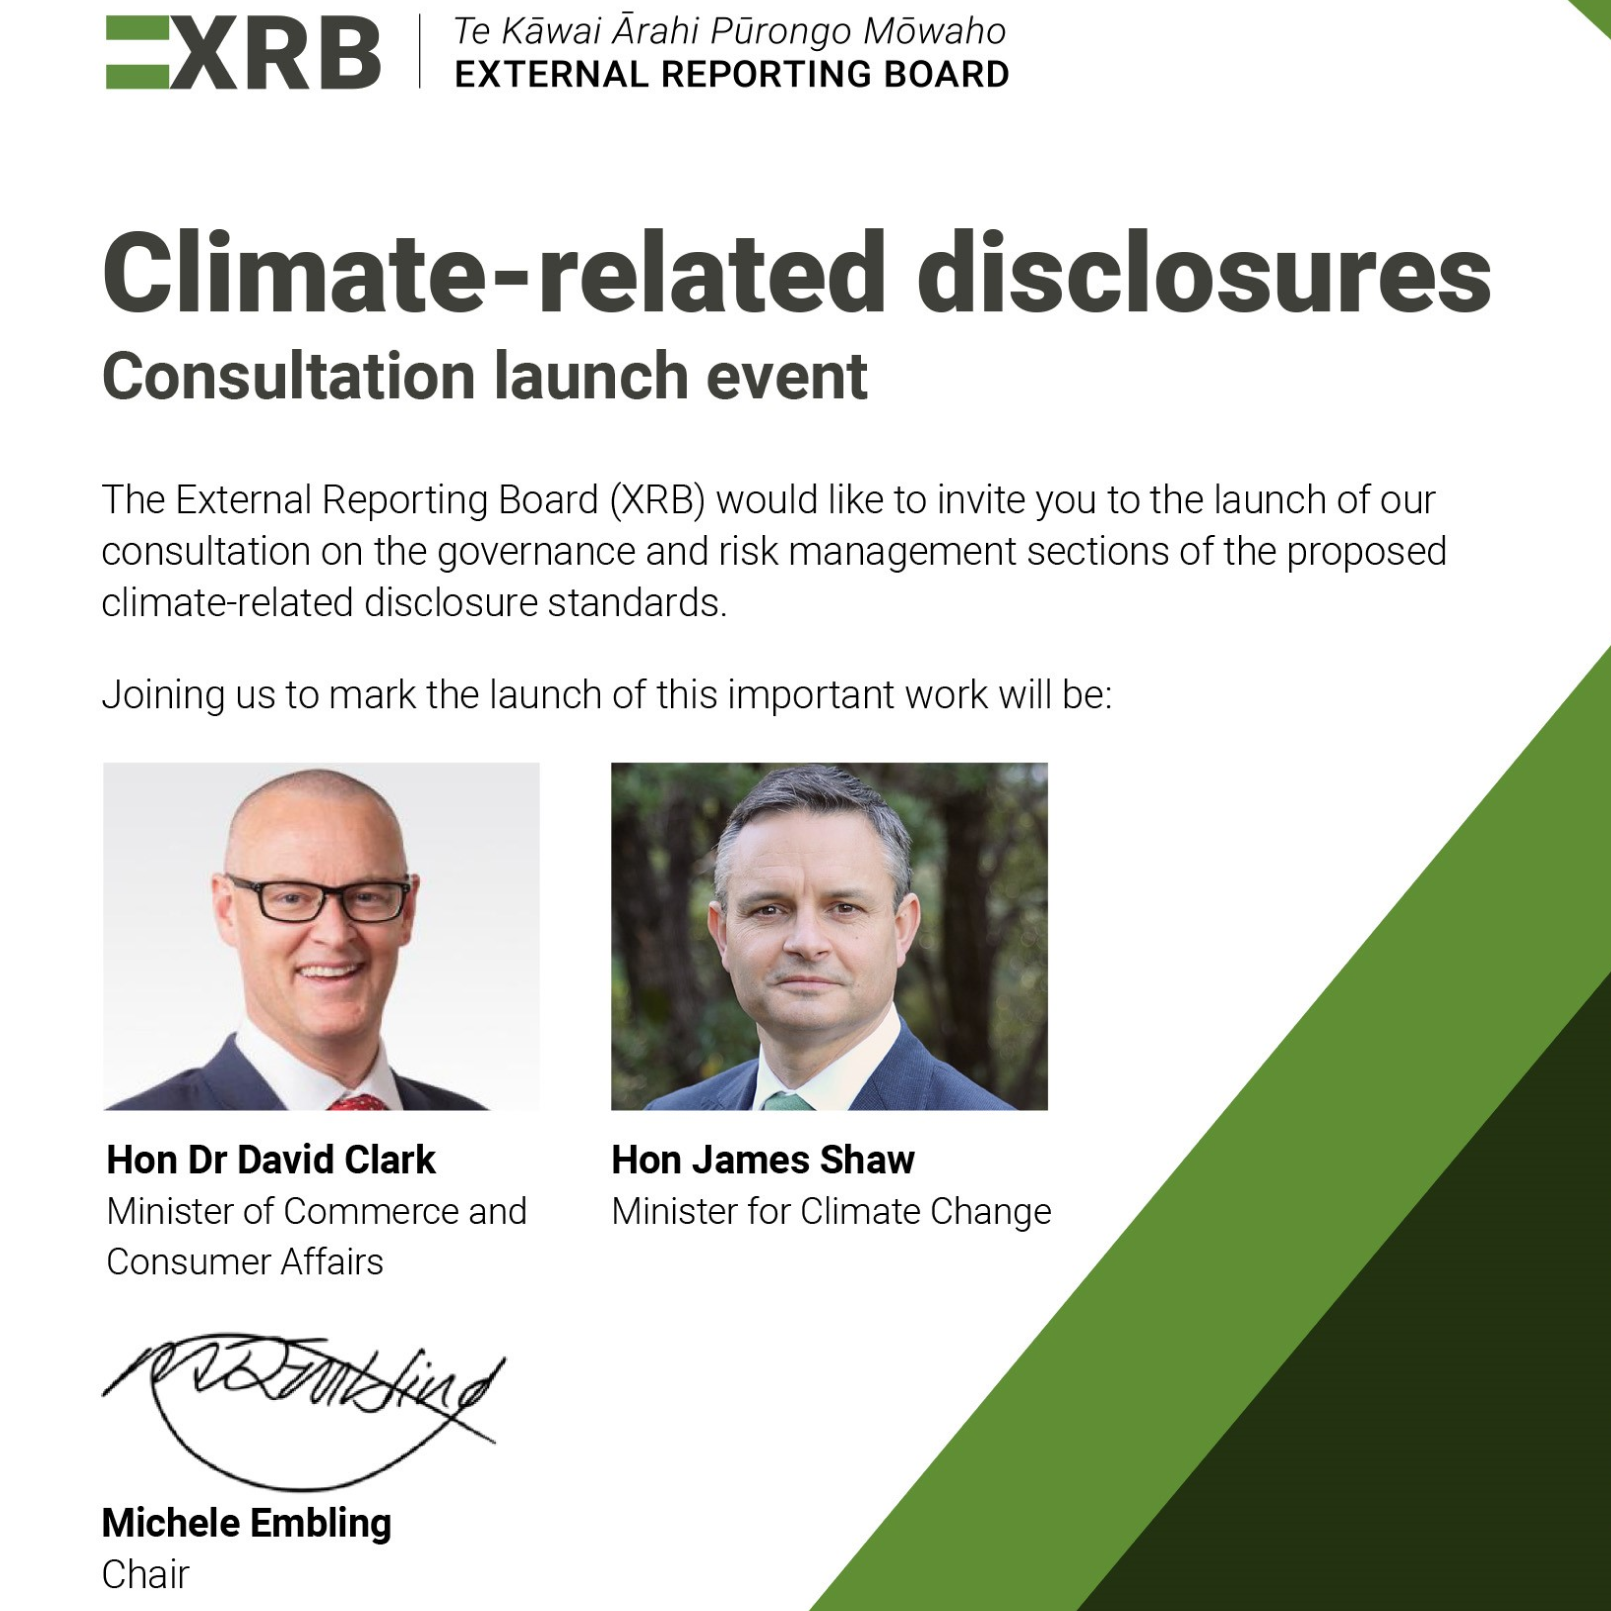 Climate-related disclosures: Consultation launch event